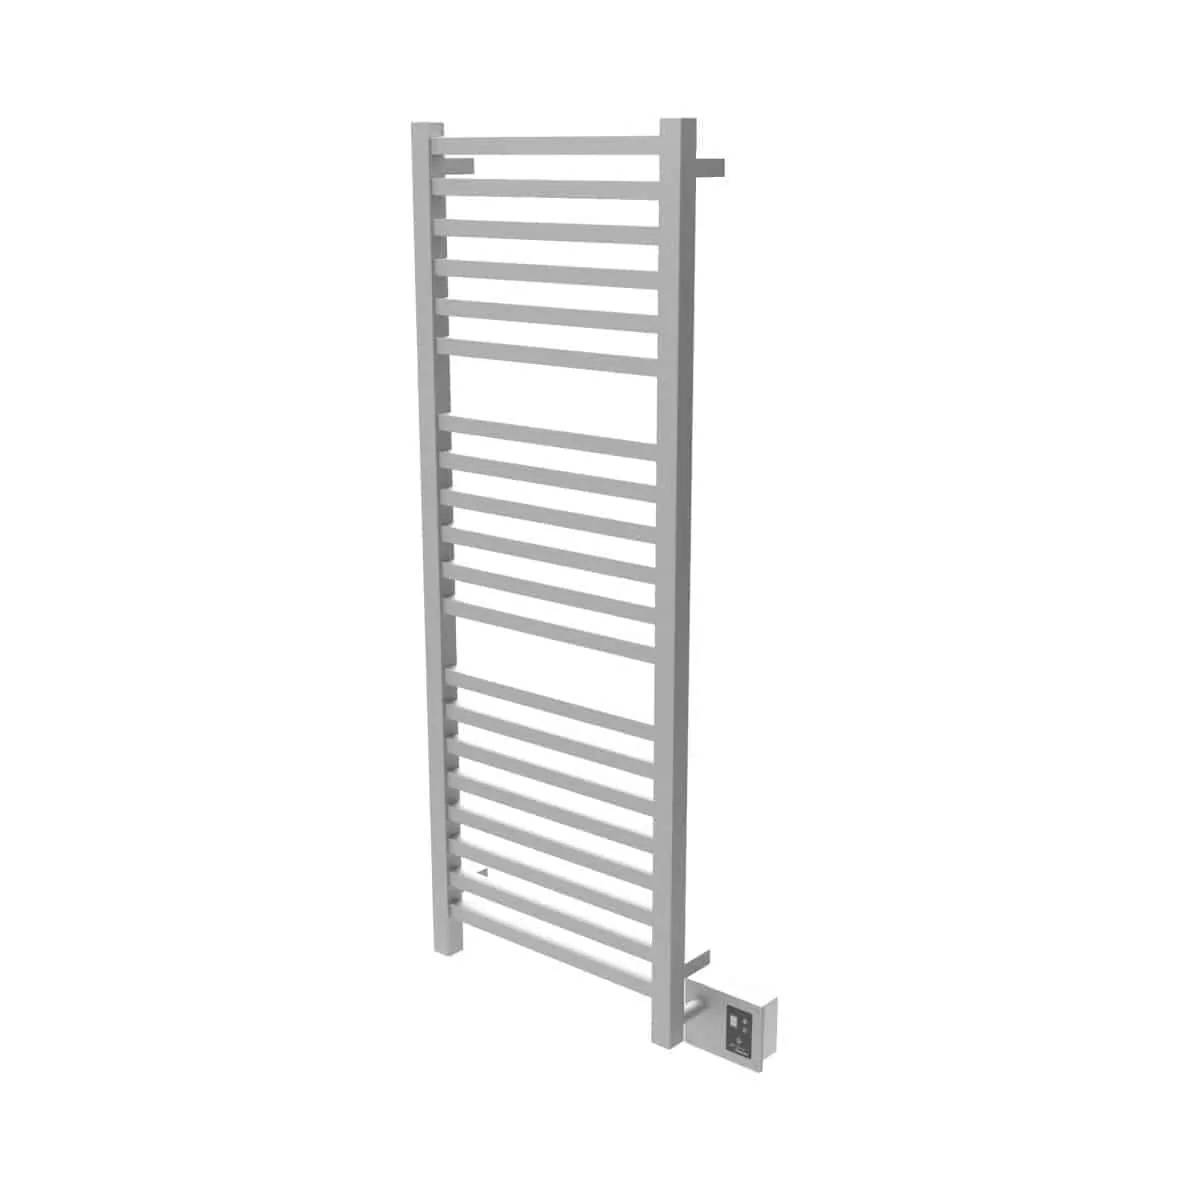 Amba Q2054B Quadro Heated Towel Rack - Brushed